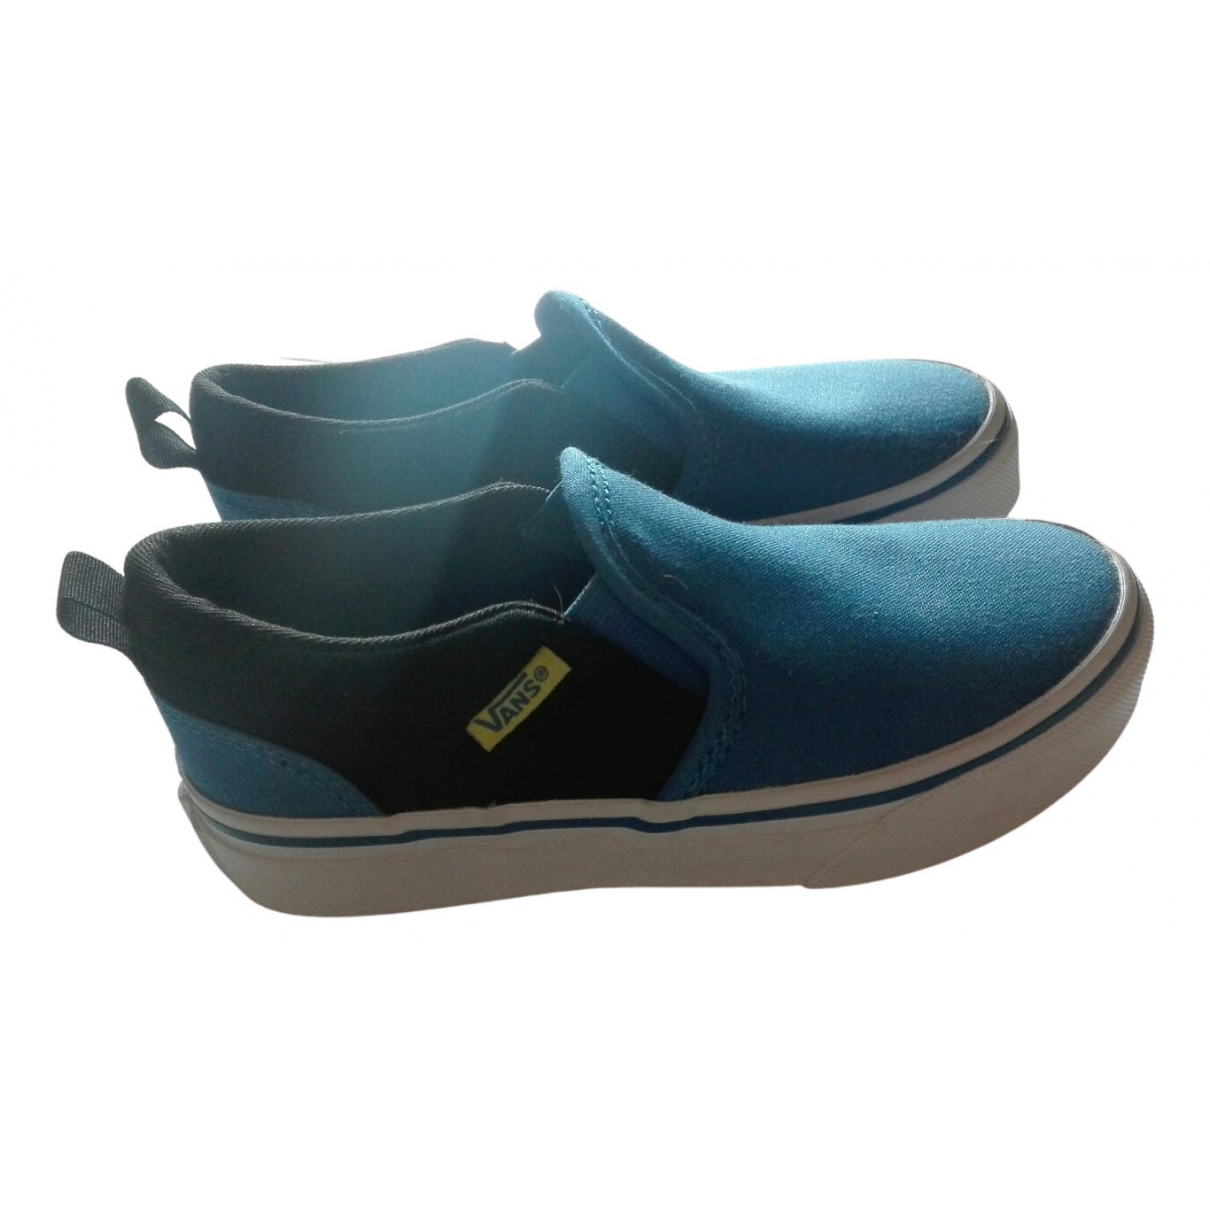 Vans N Blue Cloth Trainers for Kids 20 FR